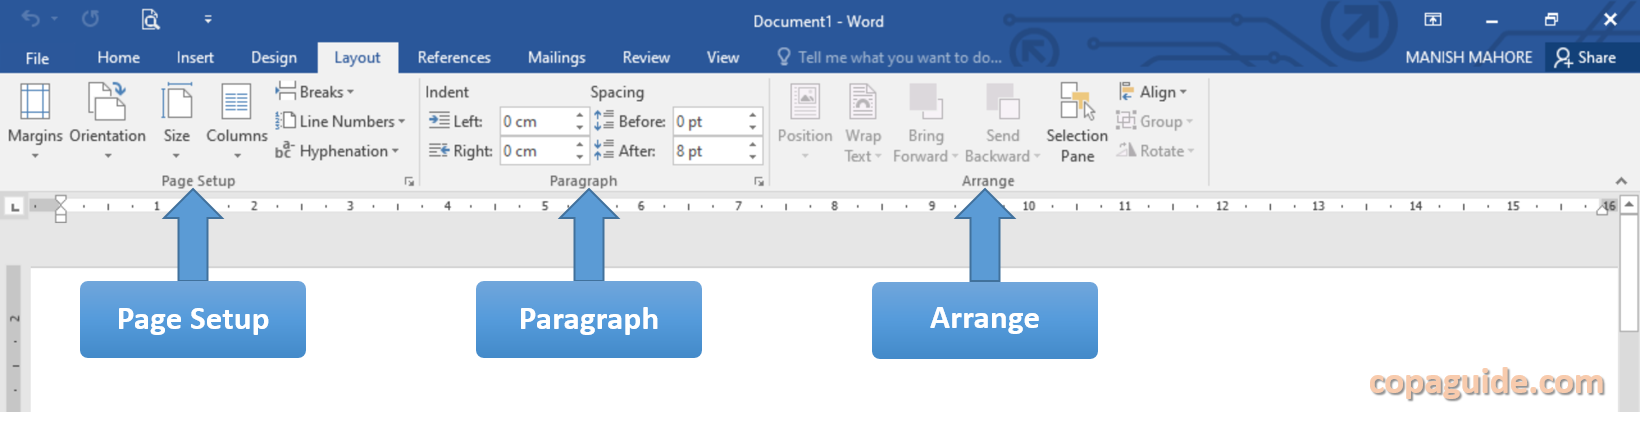 MS Word Layout Tab Commands